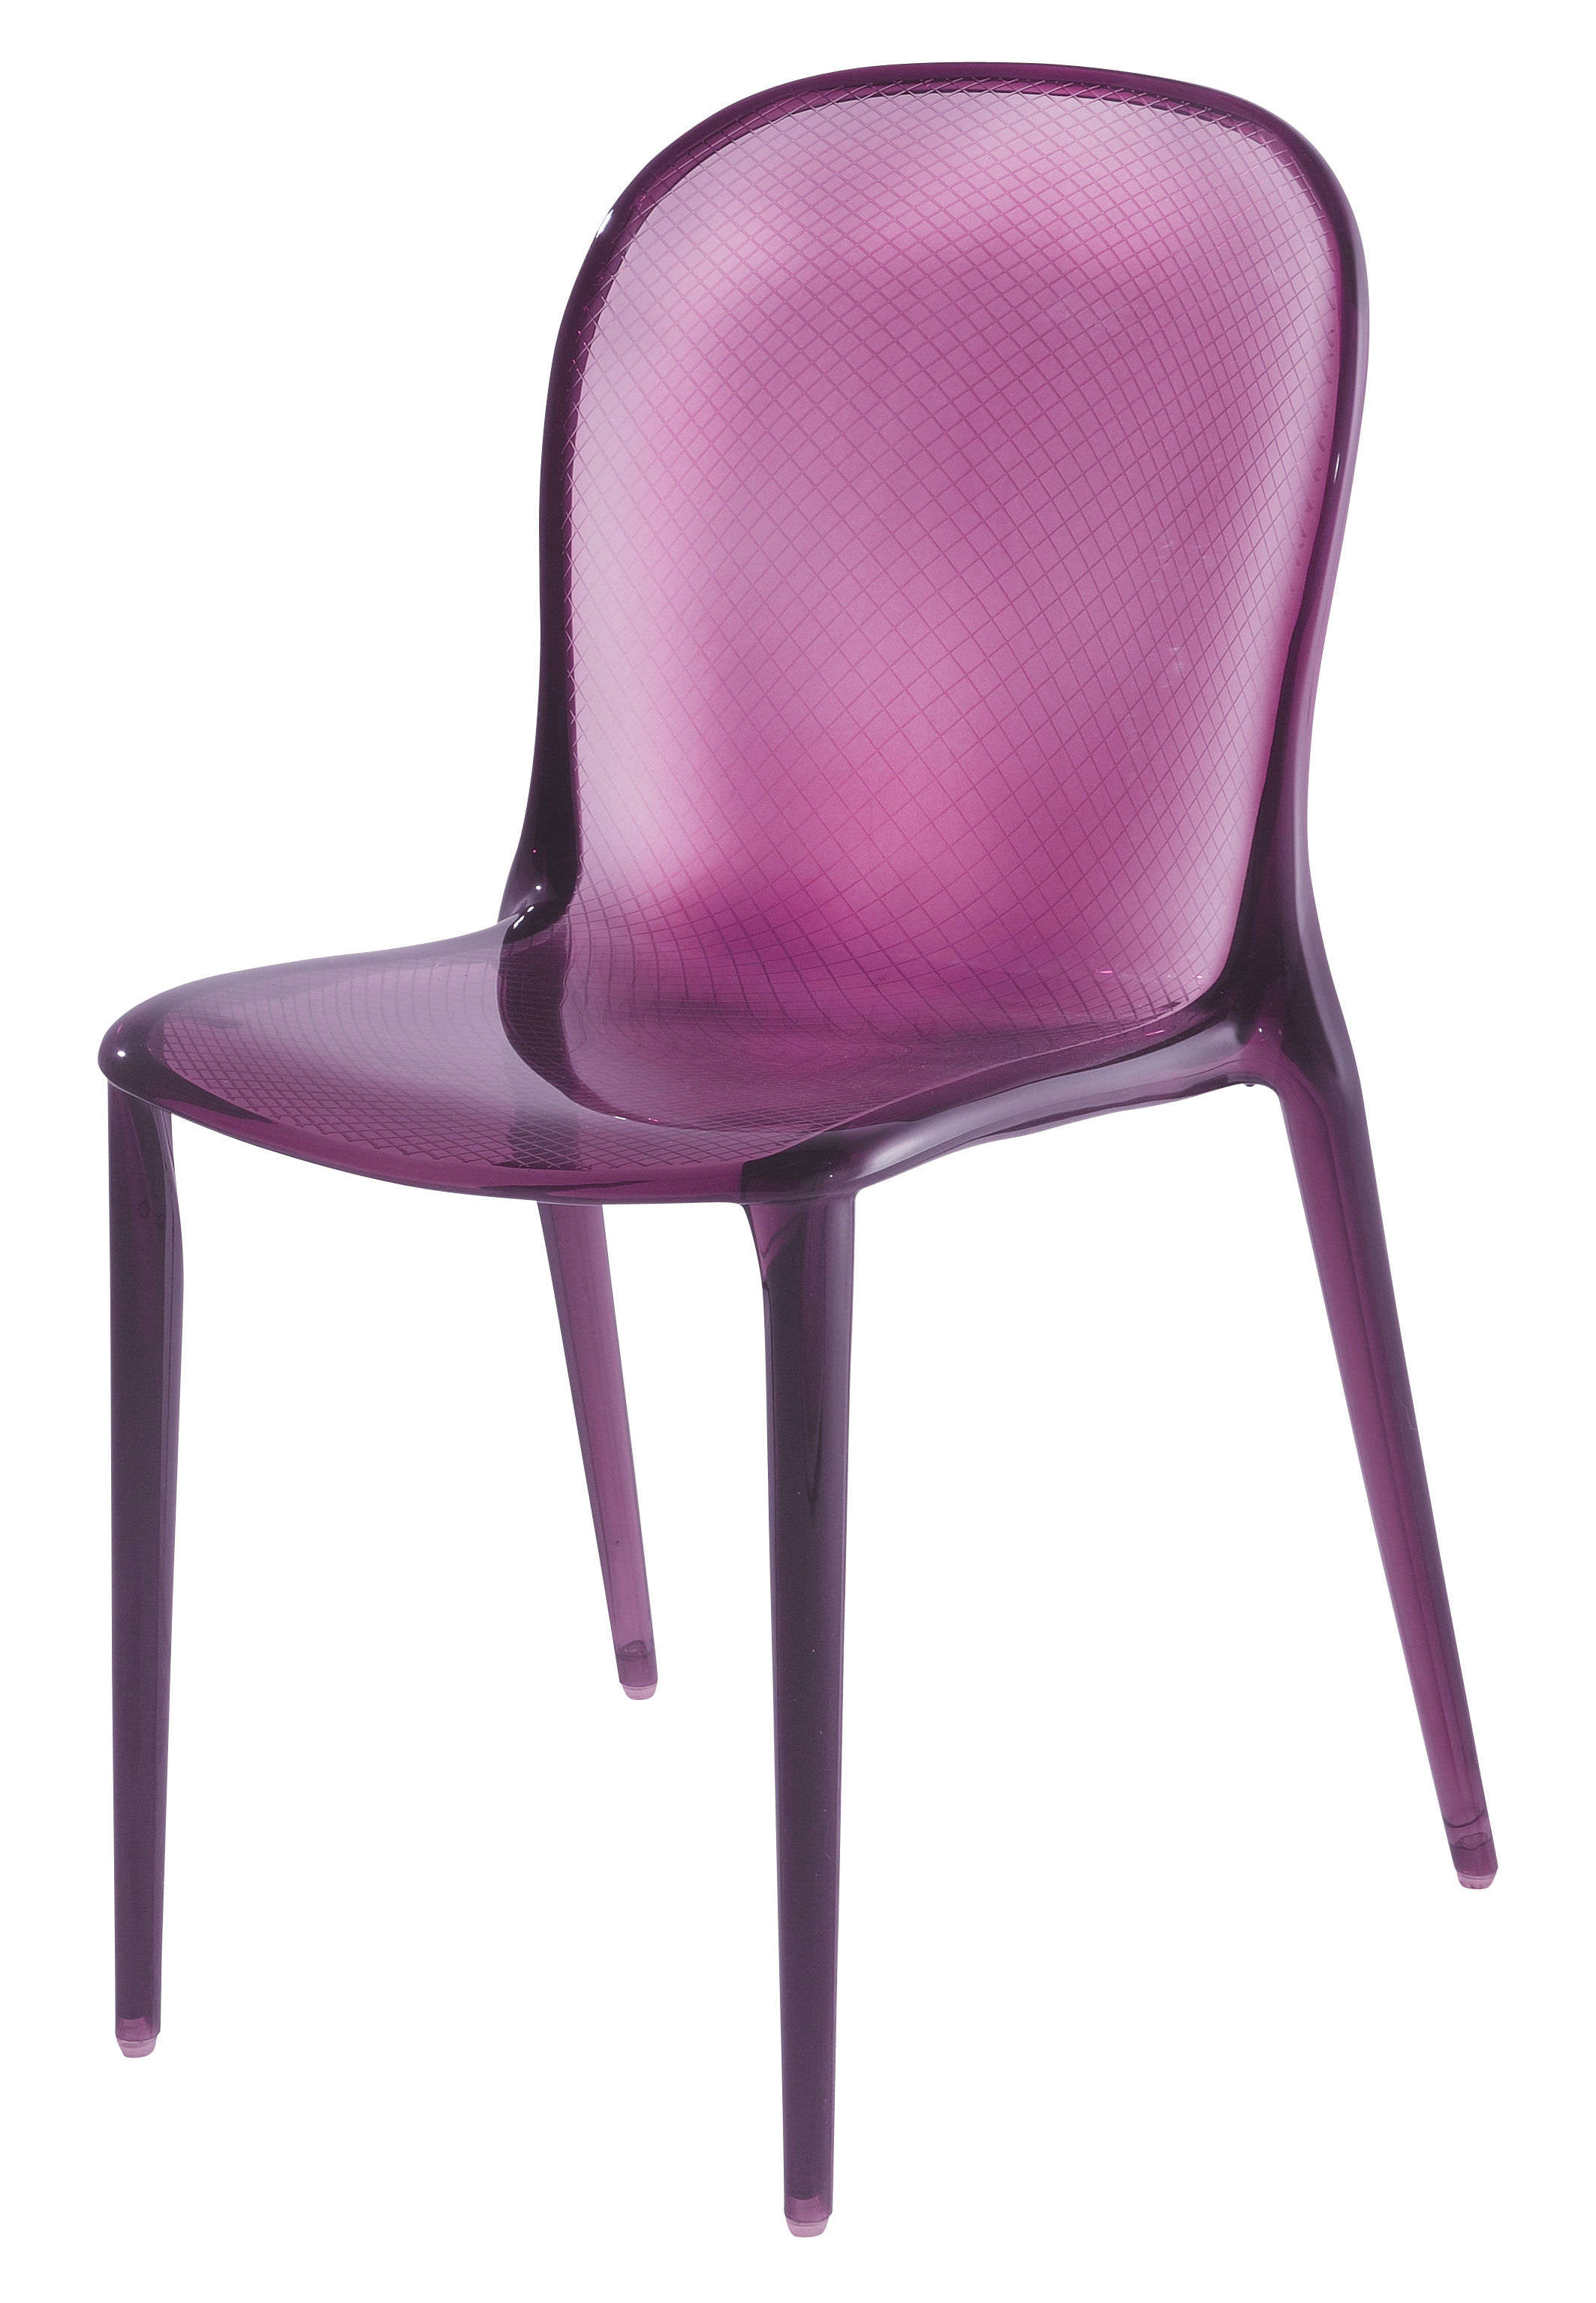 chaise empilable thalya polycarbonate violet kartell. Black Bedroom Furniture Sets. Home Design Ideas